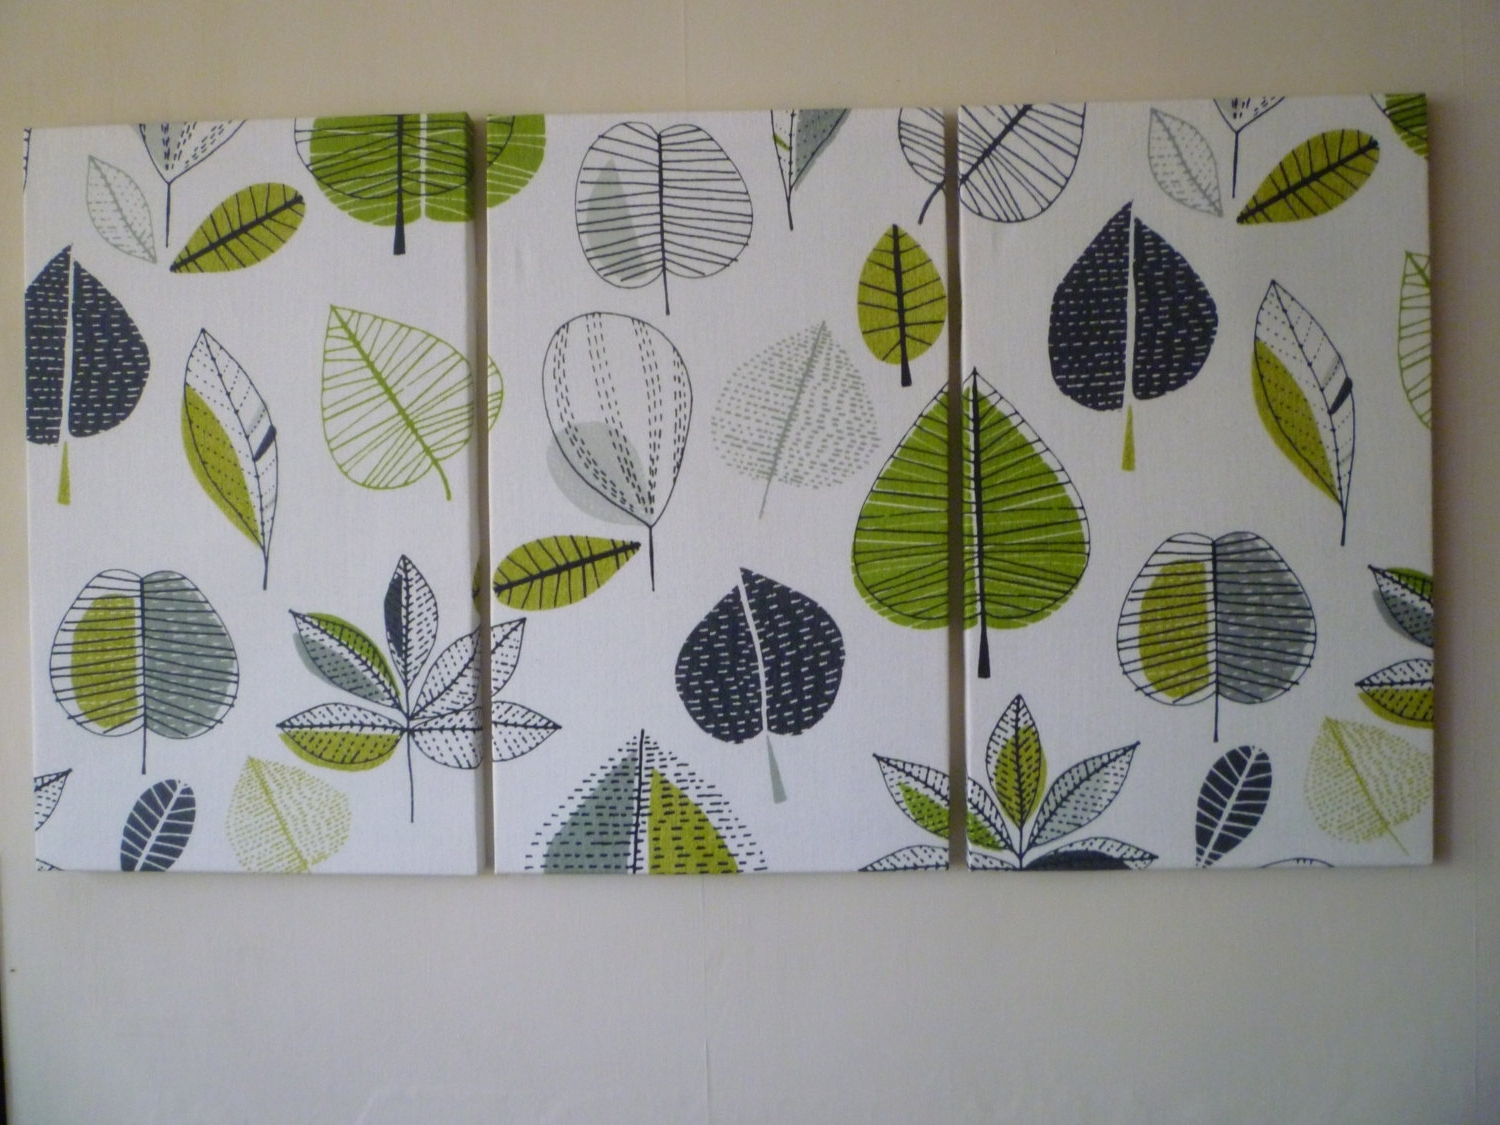 Current Wall Art Designs: Fabric Wall Art Big Lime Green Fabric Wall Art In Fabric Wall Art Panels (View 4 of 15)